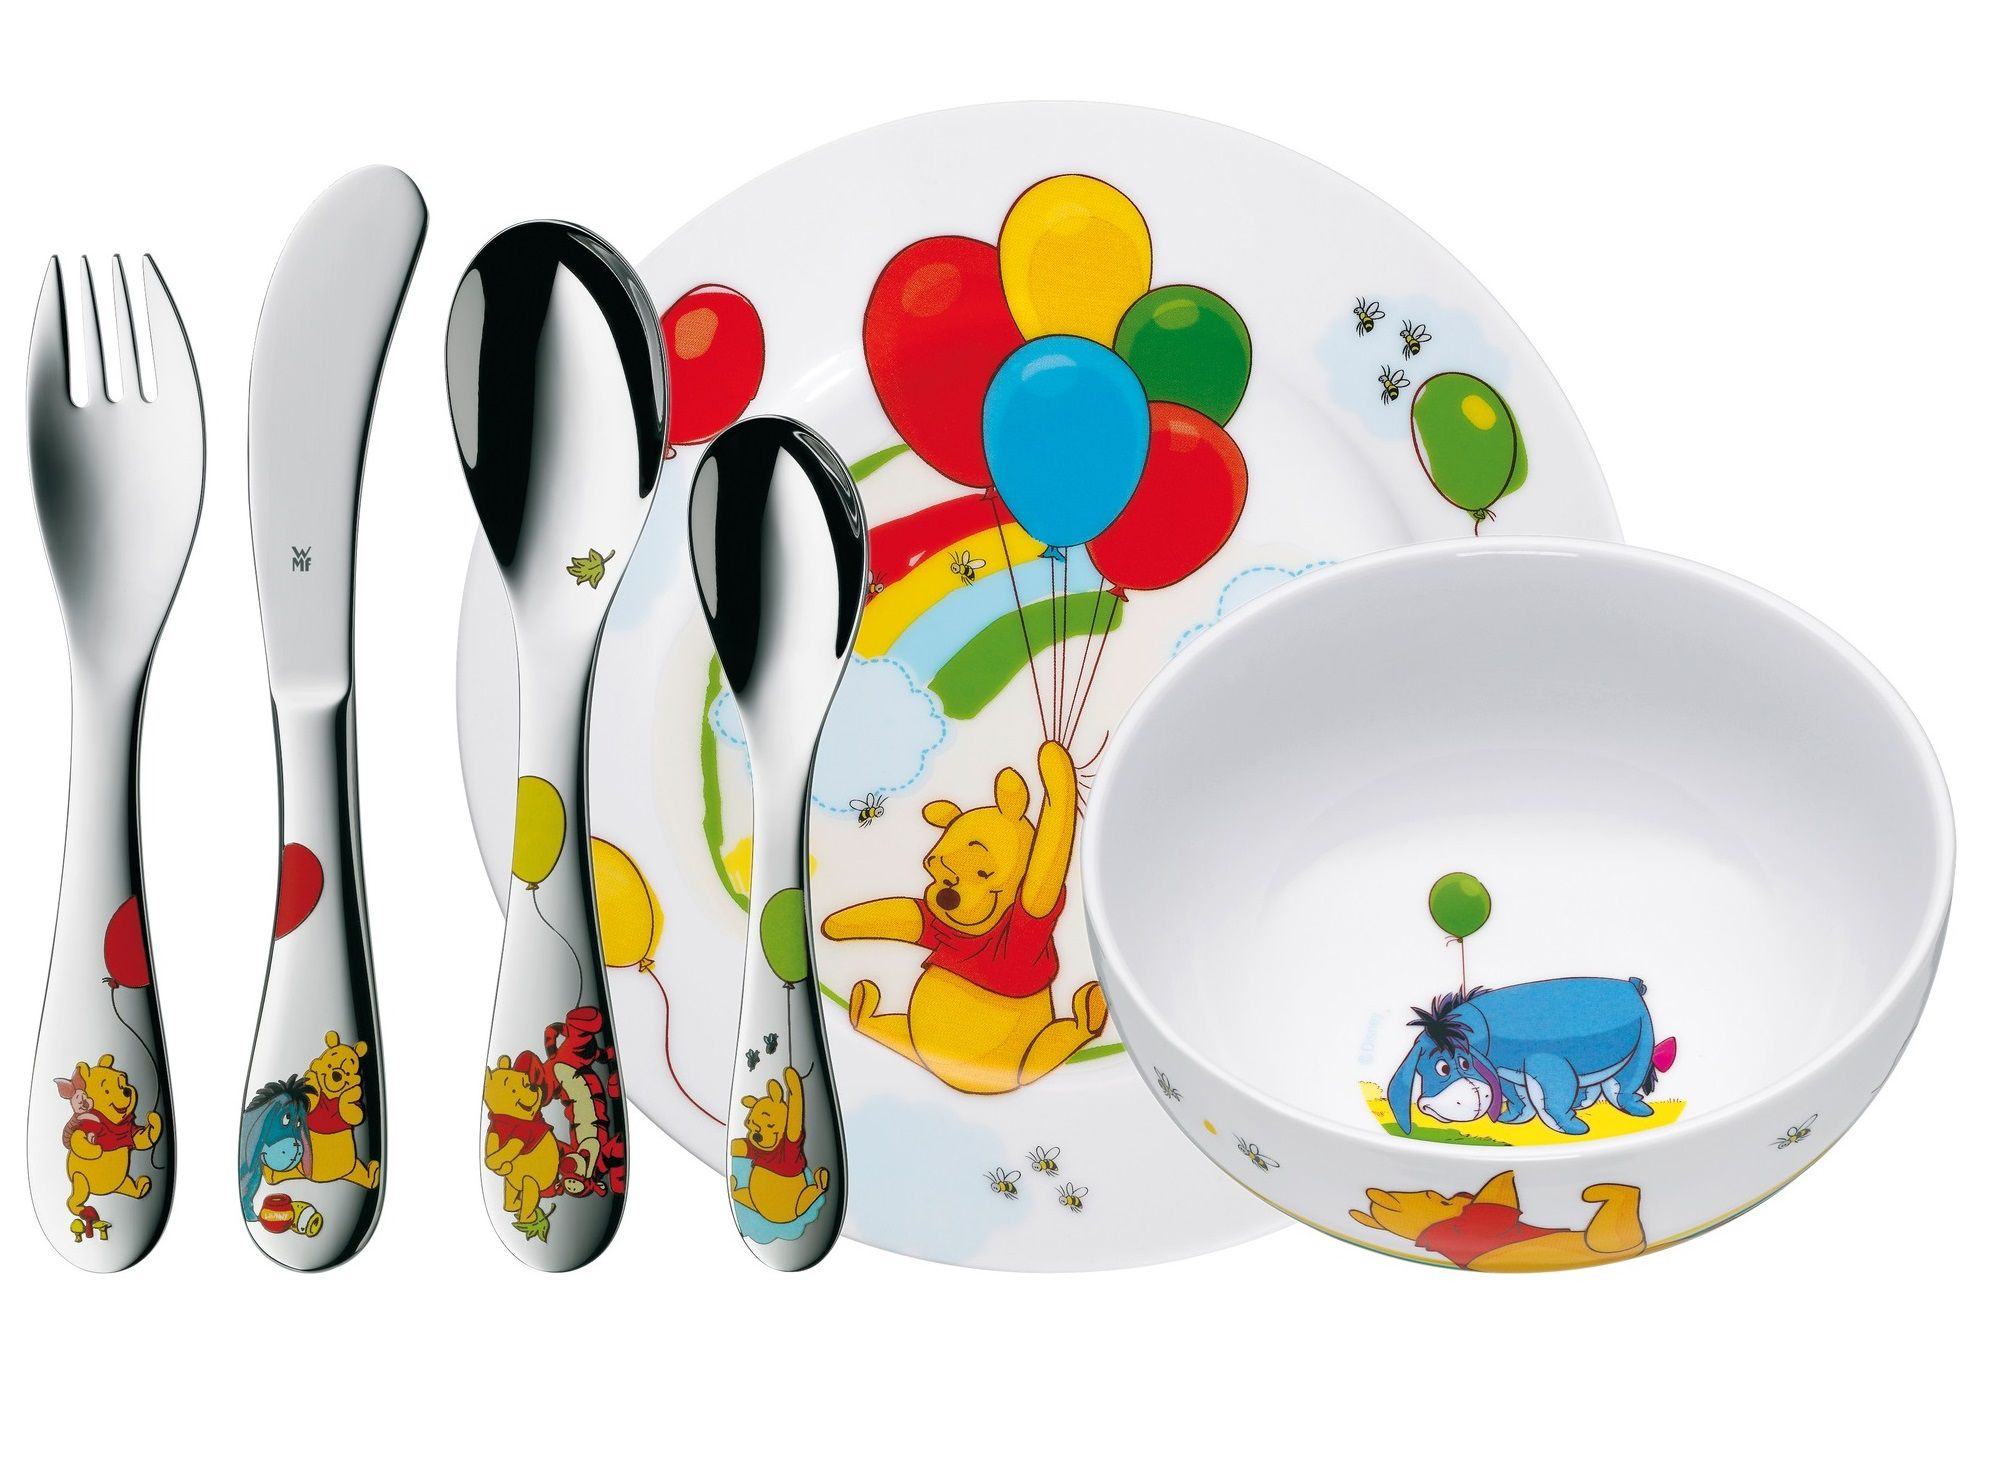 WMF Kids Disney Winnie de Poeh kinderservies 6-delig